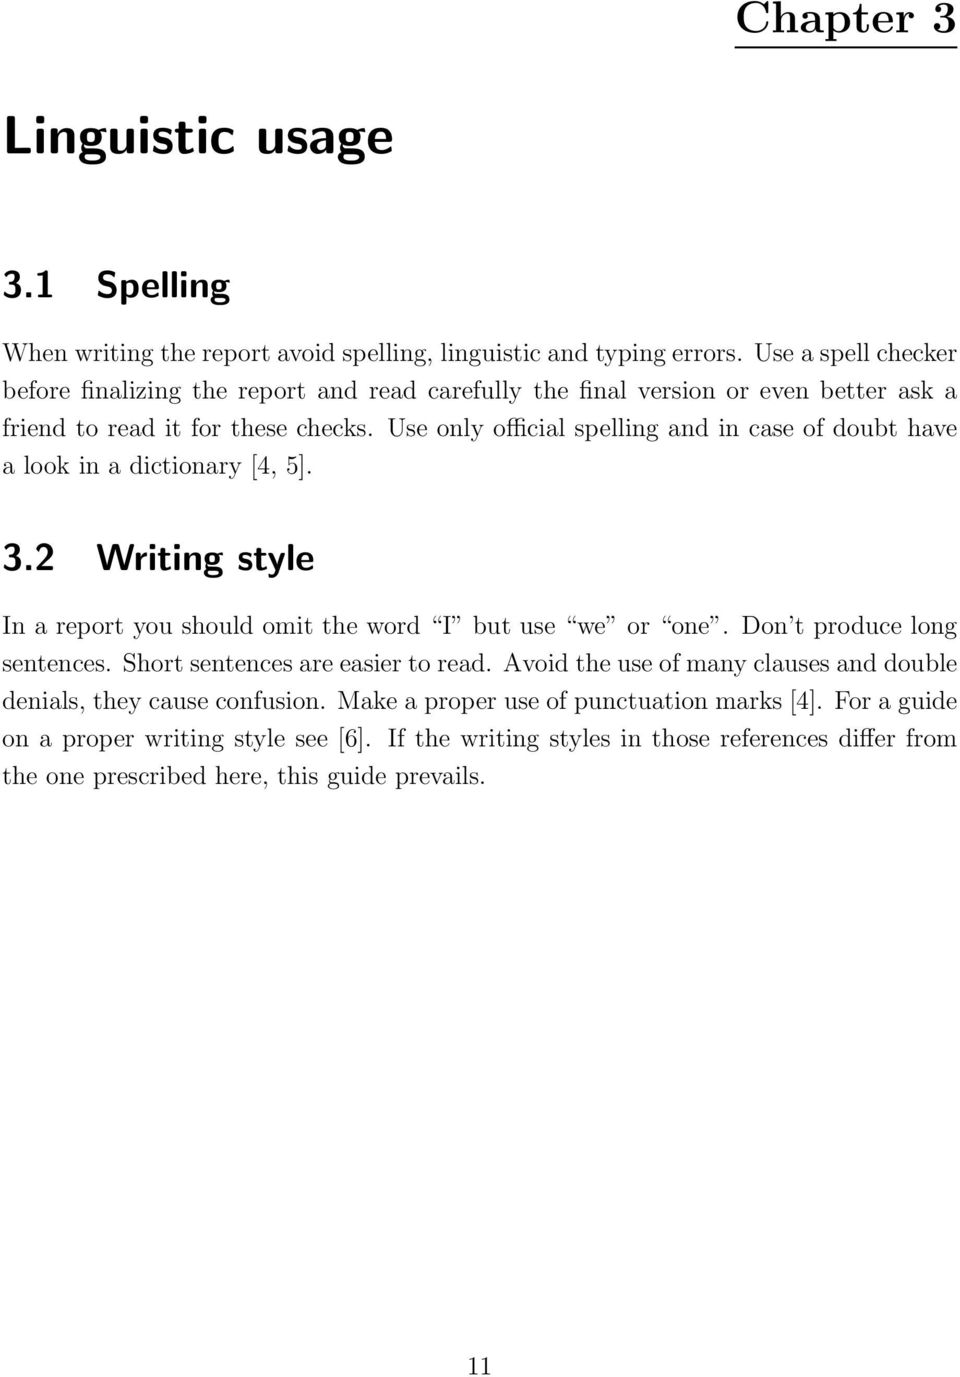 Use only official spelling and in case of doubt have a look in a dictionary [4, 5]. 3.2 Writing style In a report you should omit the word I but use we or one.